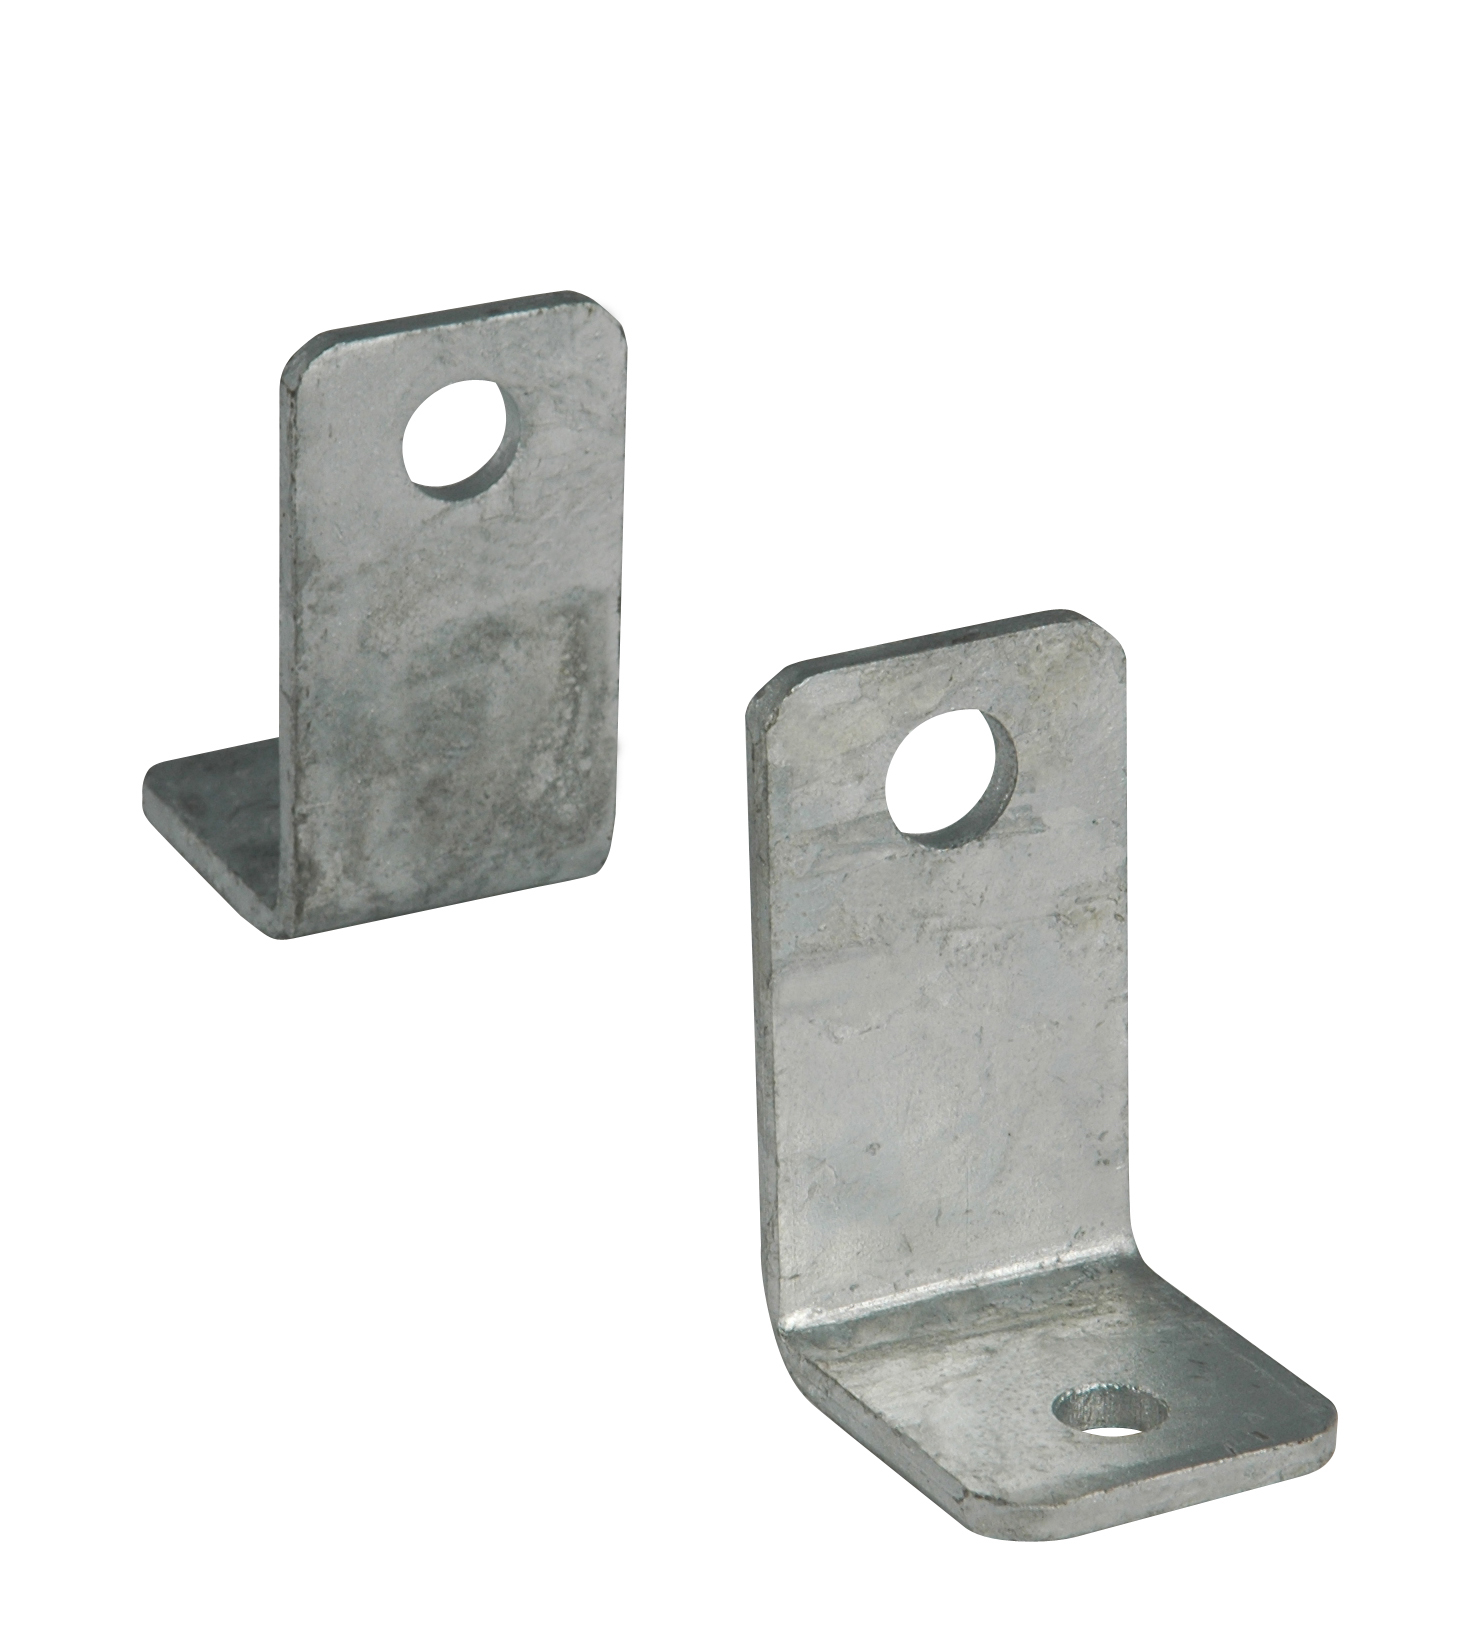 Roller ''l'' Bracket - 1 Pair MAIN